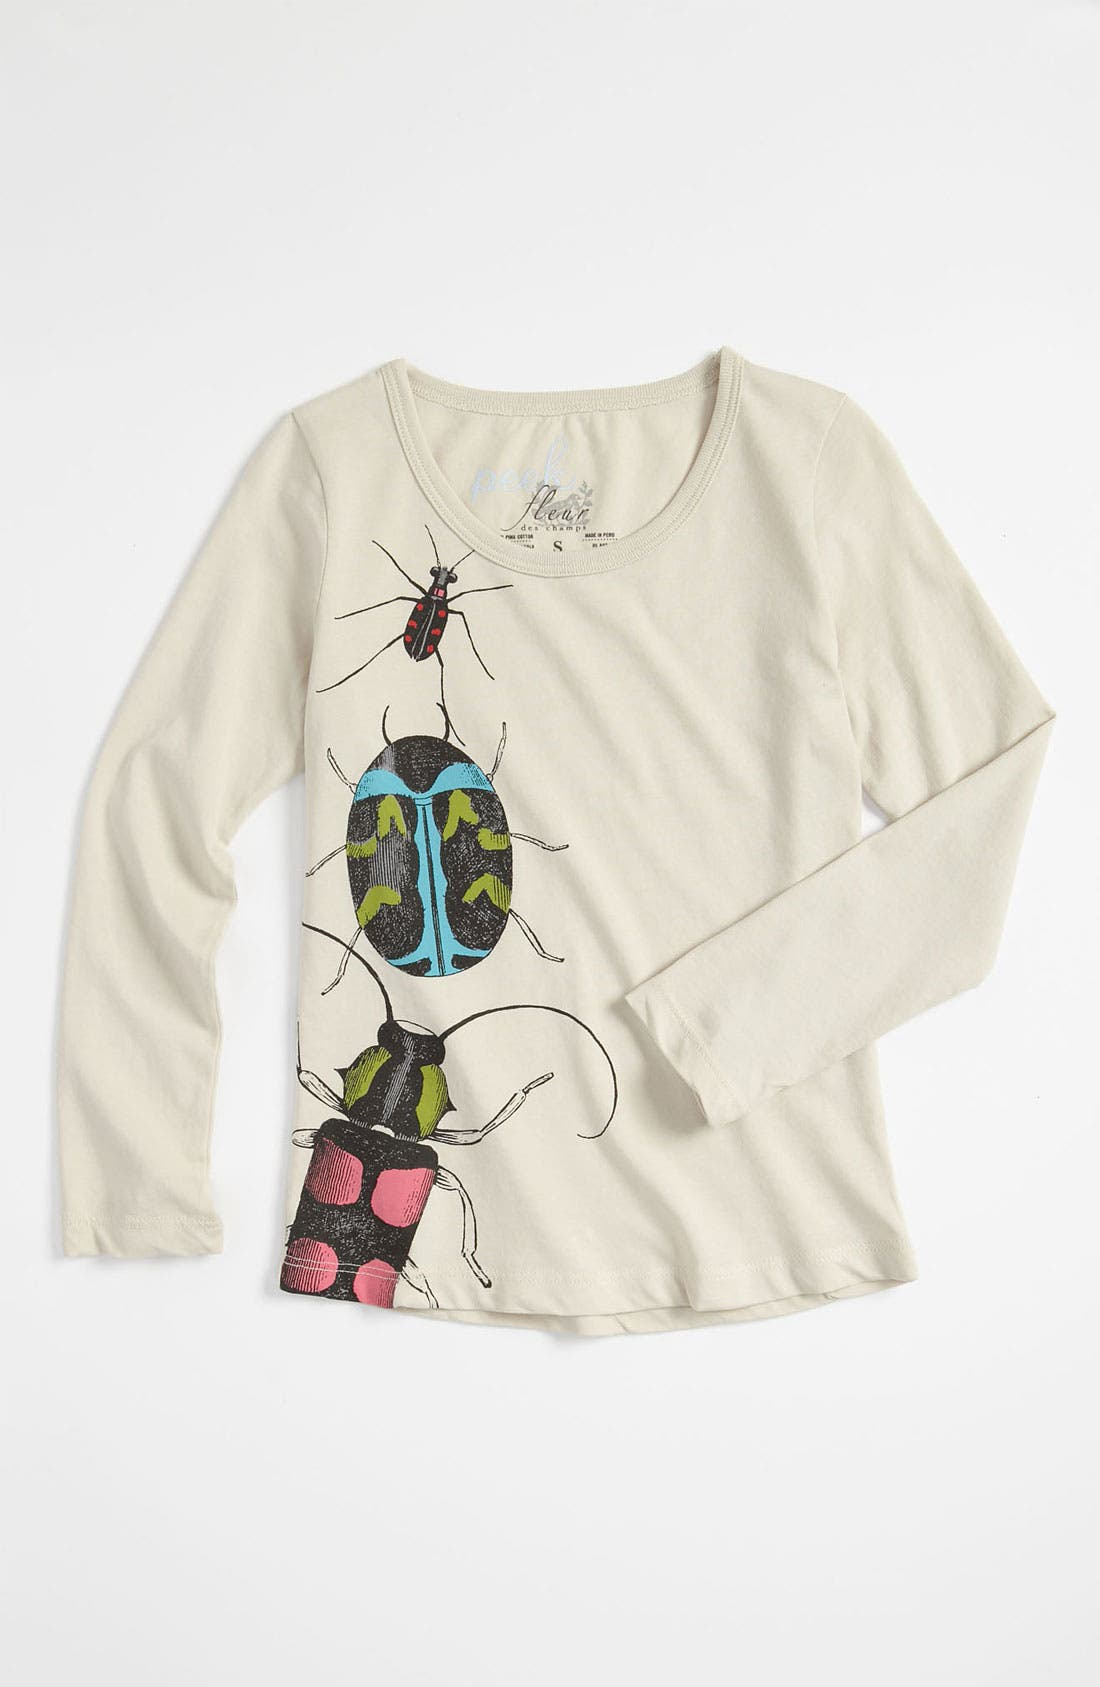 Main Image - Peek 'Beetle' Tee (Toddler, Little Girls & Big Girls)